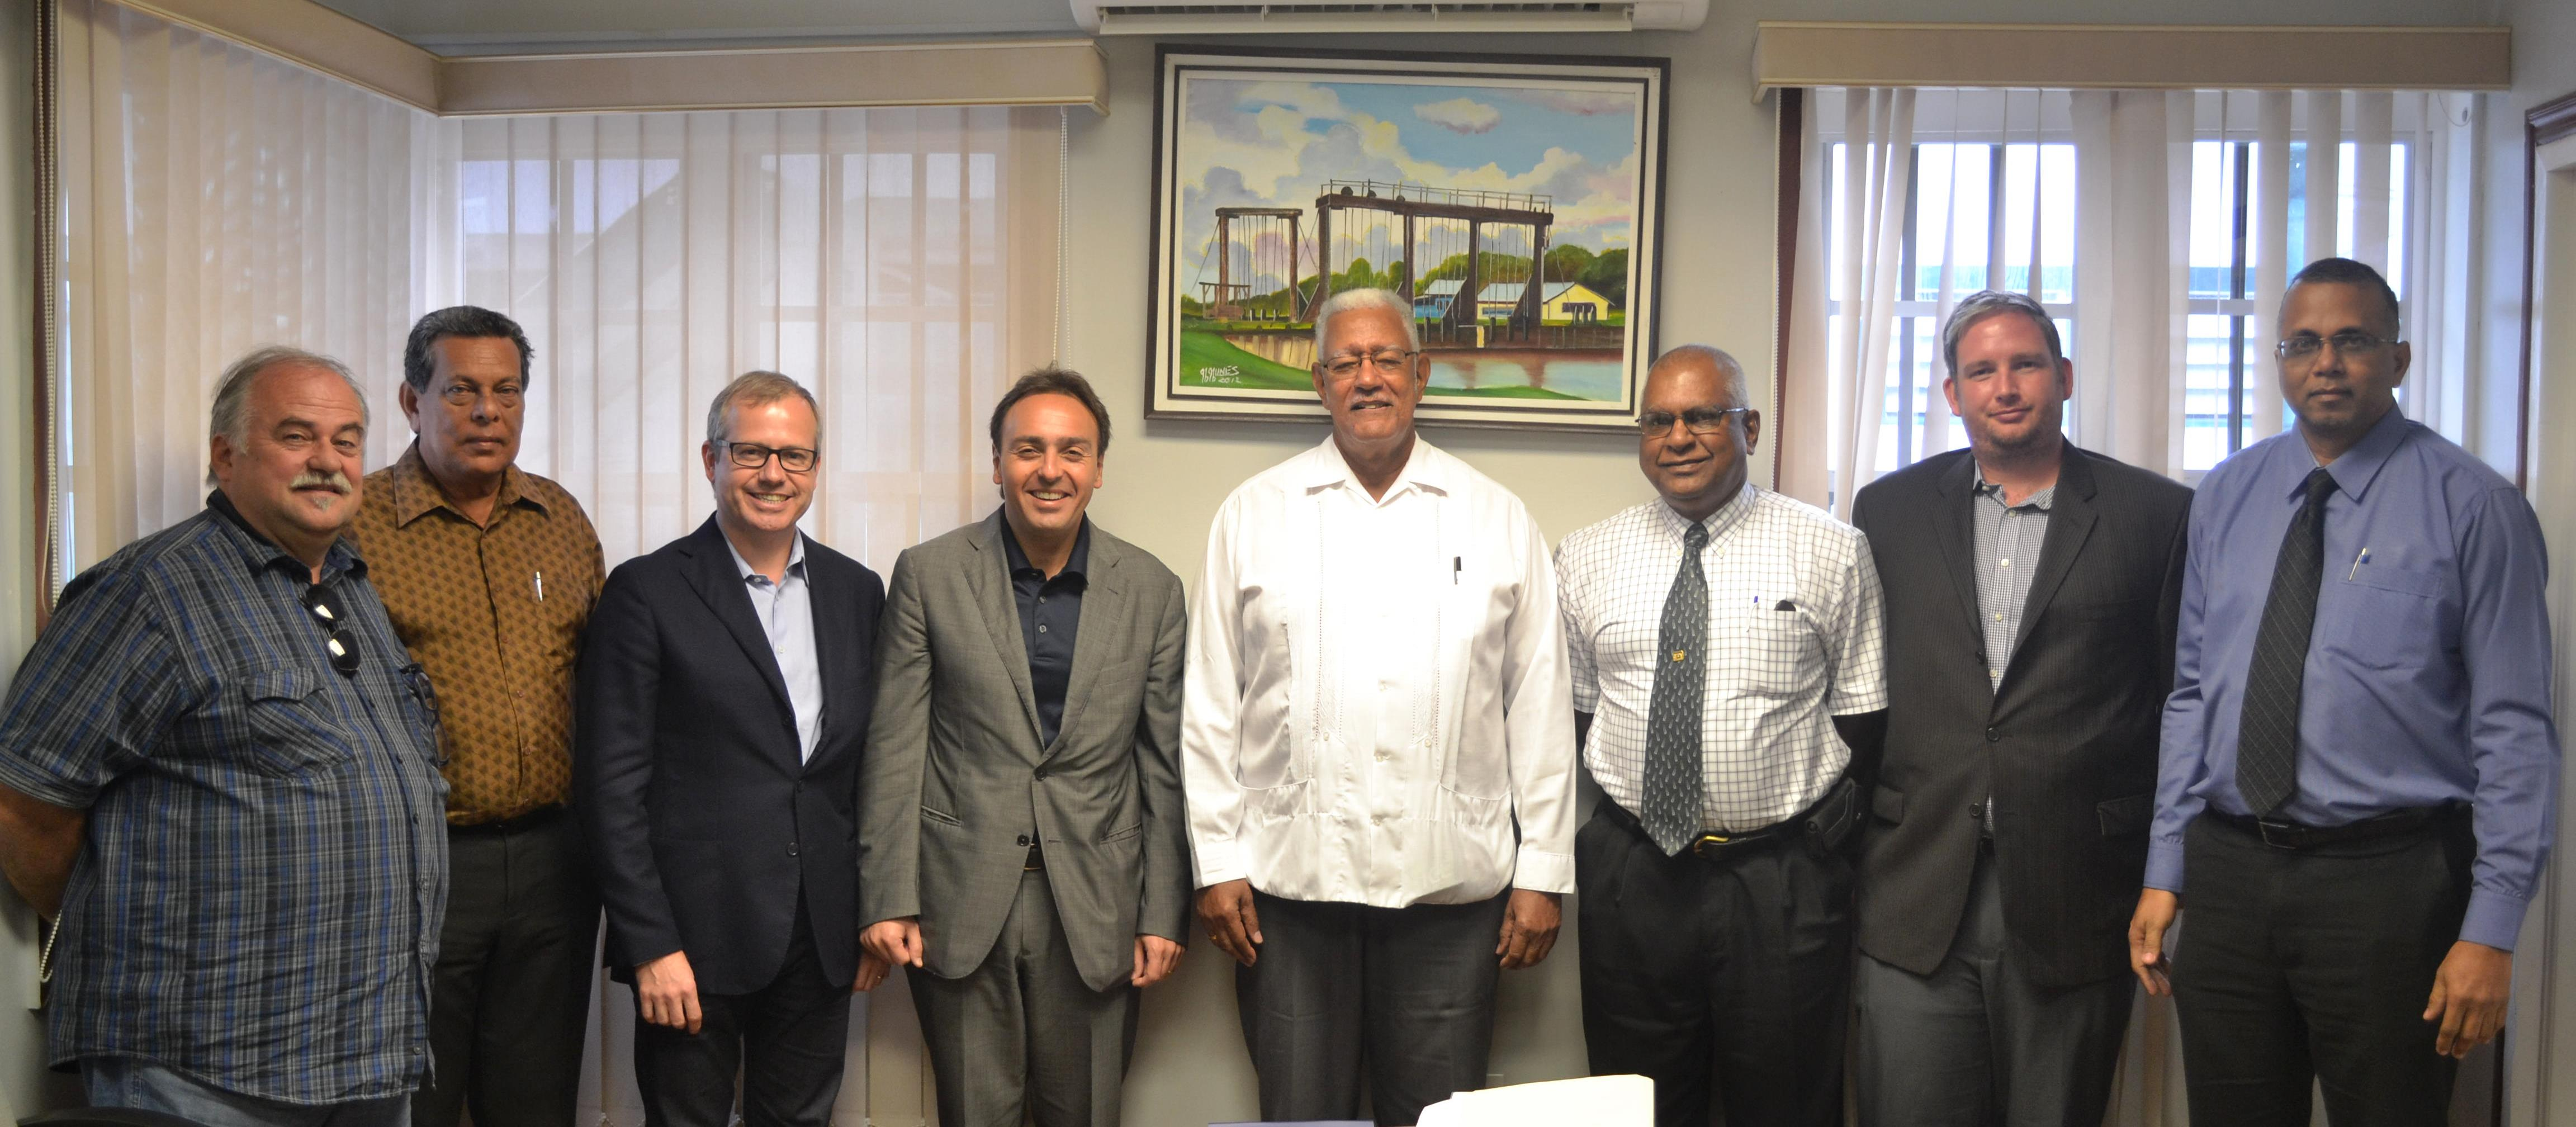 Minister Noel Holder with Mr Bruno  Sempio (left of minister) and other officials at the meeting